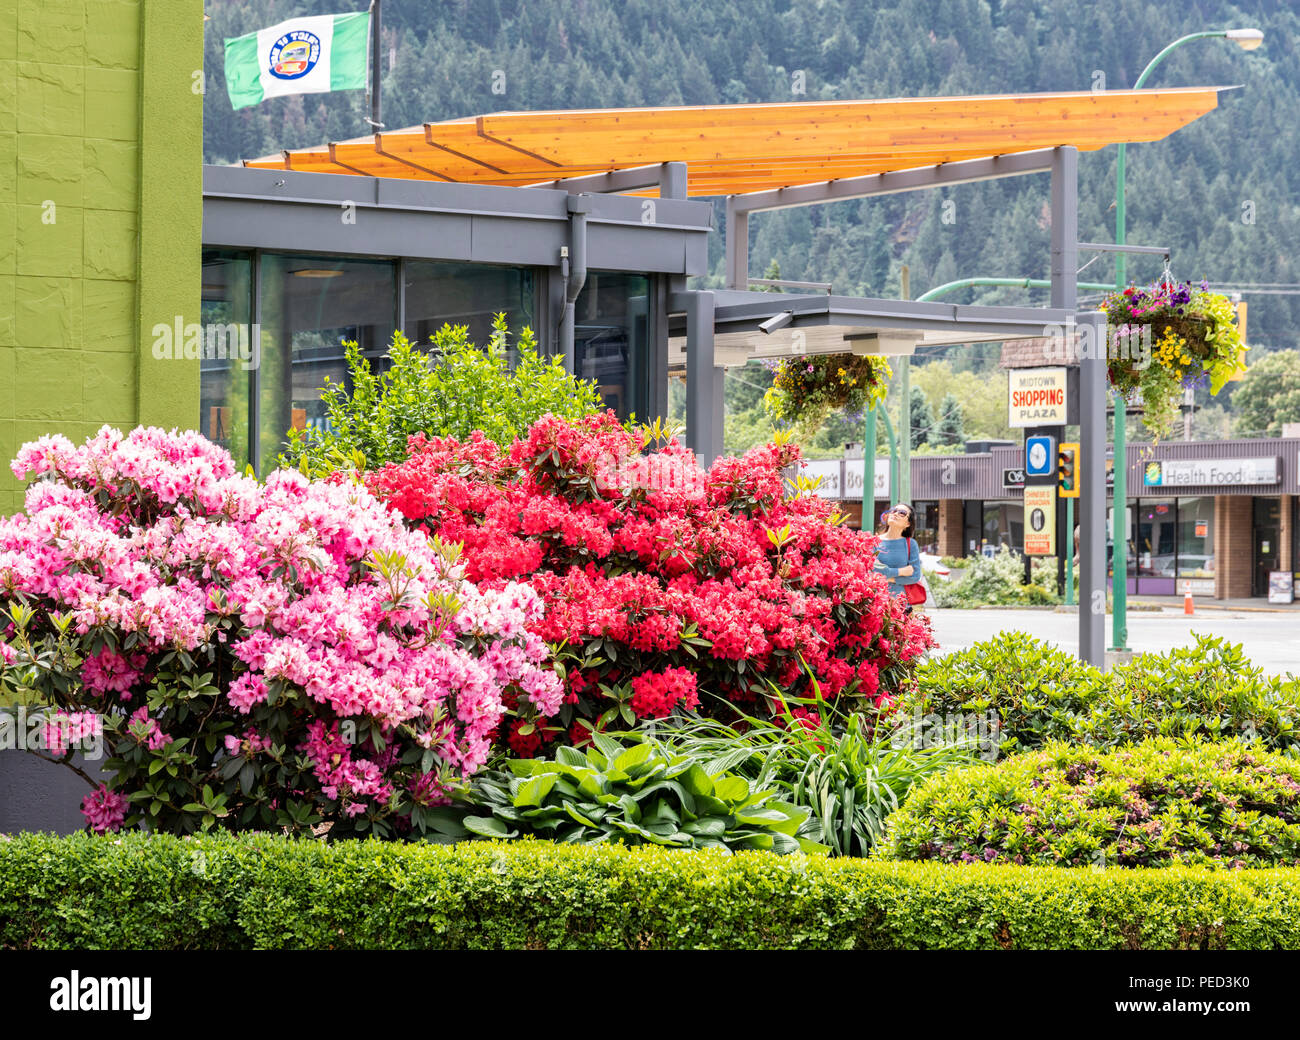 Floral display in the town of Hope, British Columbia, Canada - Stock Image